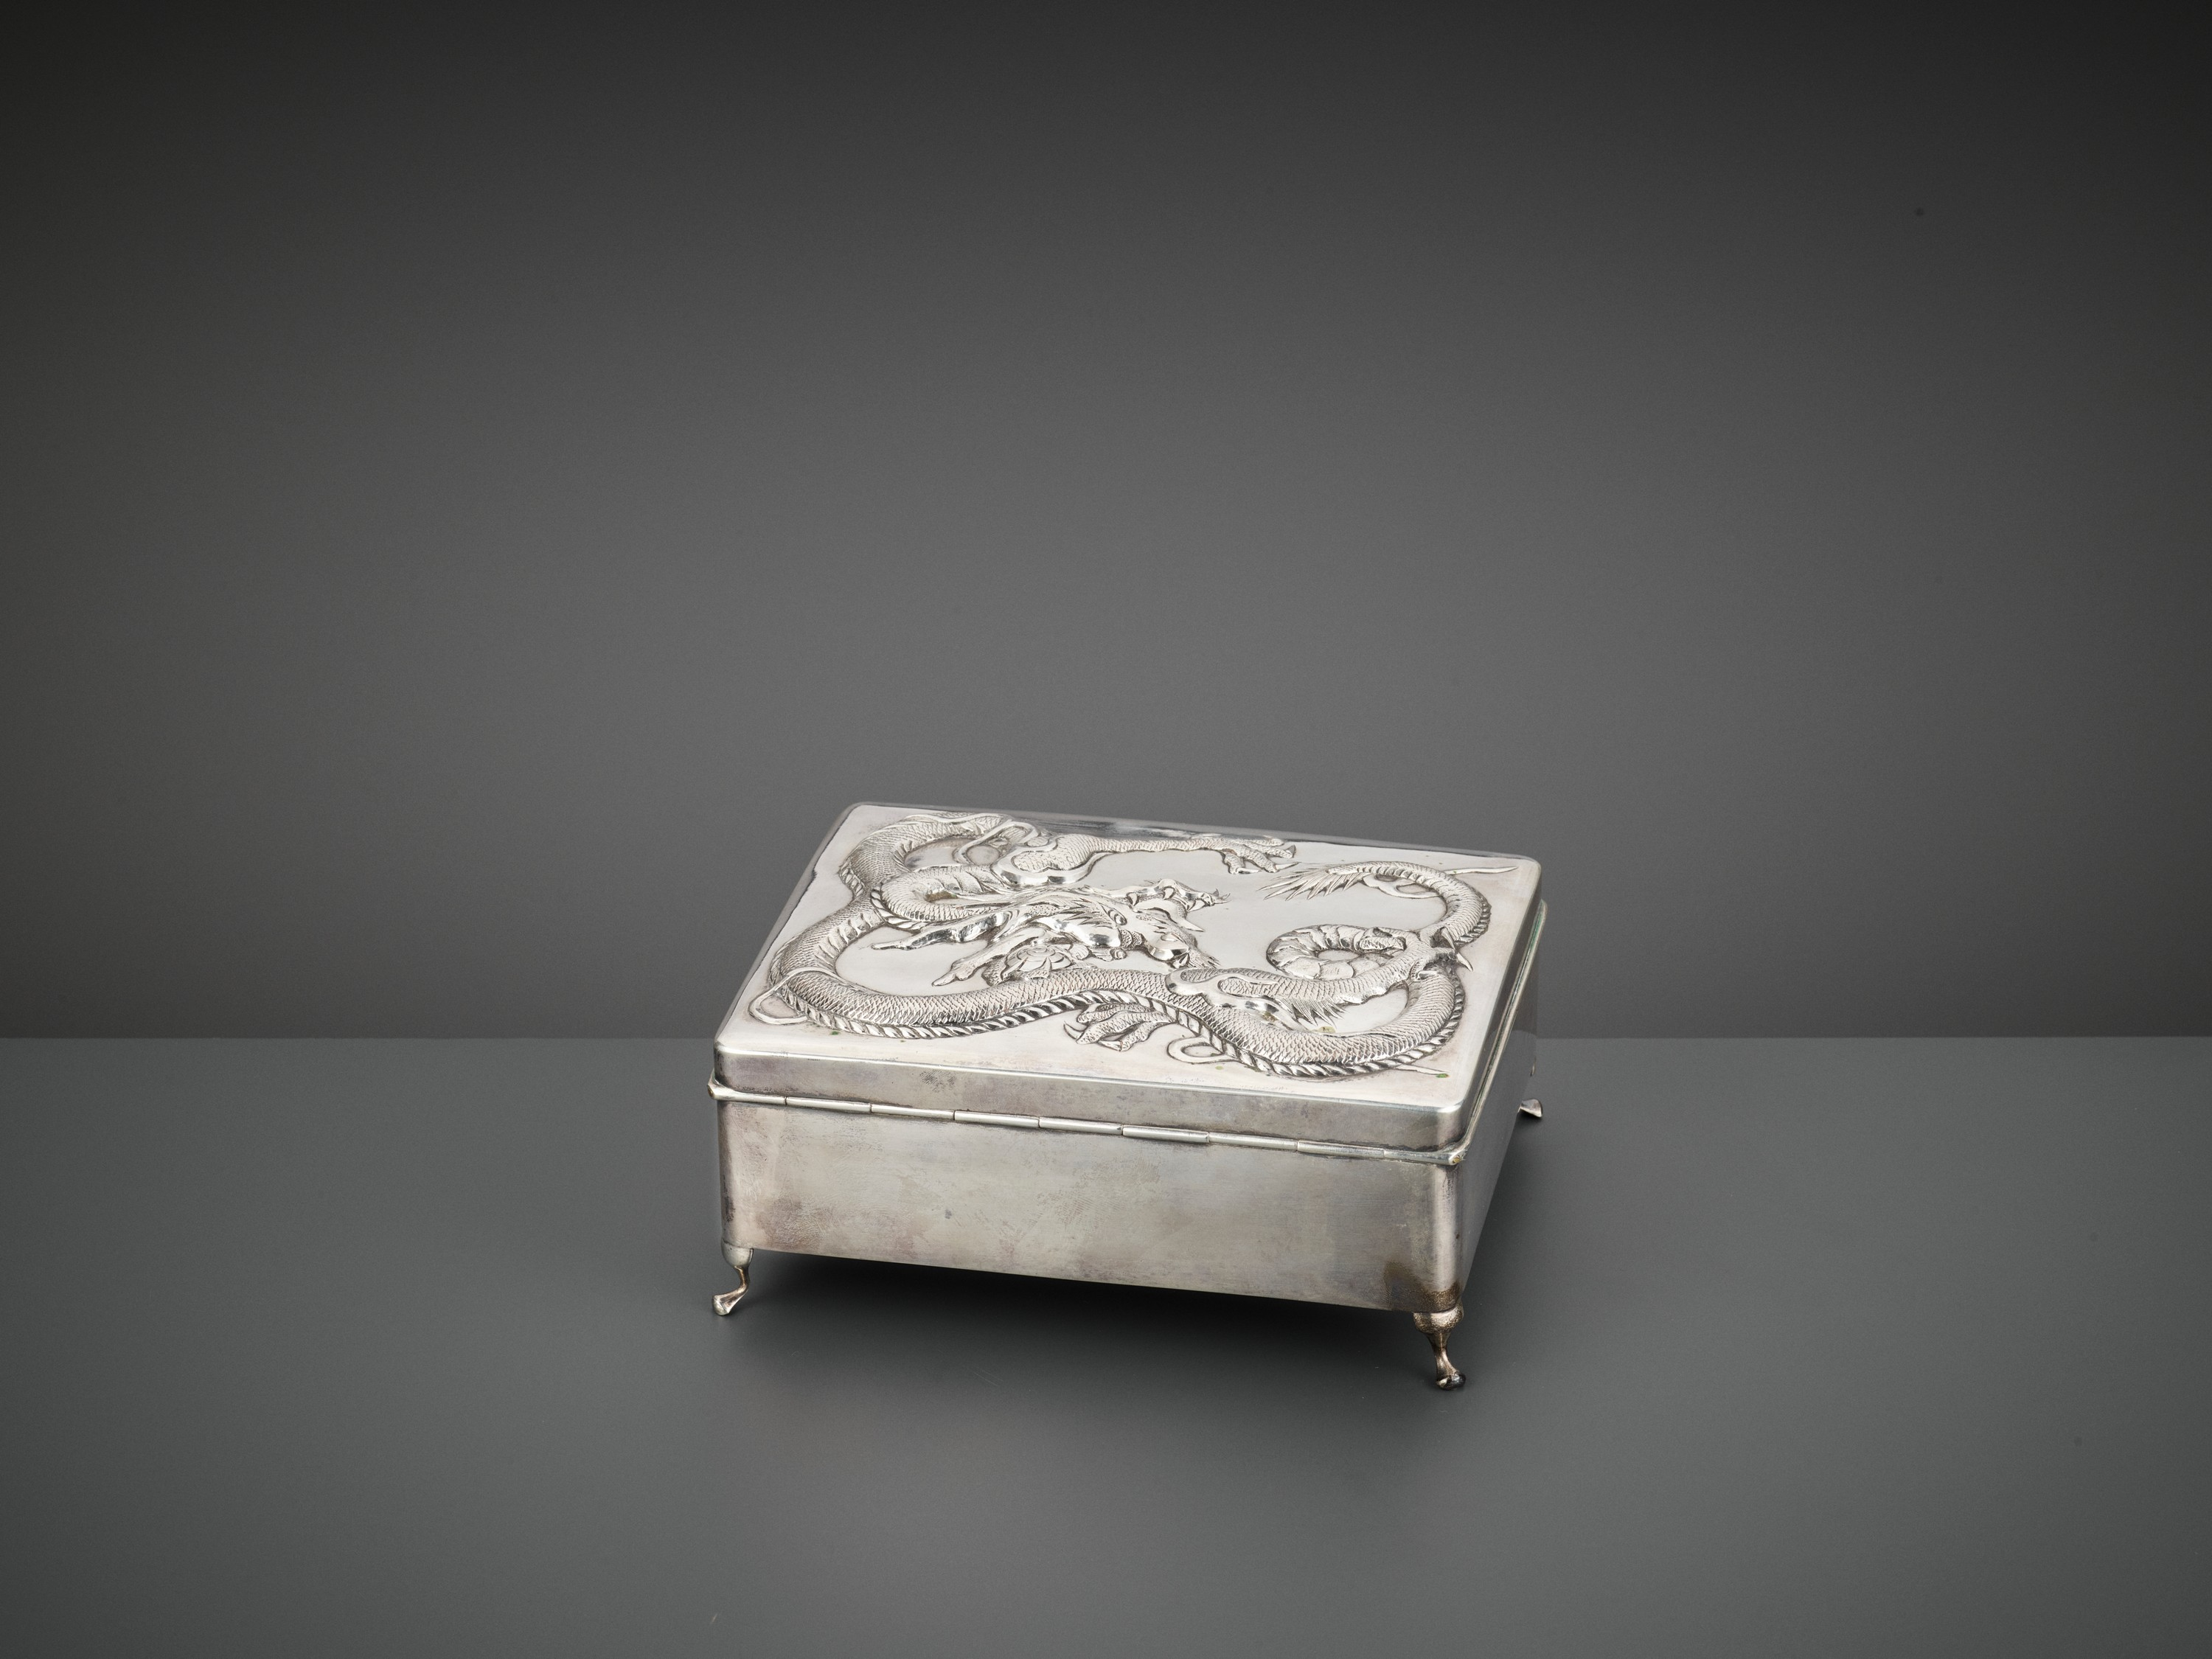 A SILVER REPOUSSE 'DRAGON' BOX AND COVER, WANG HING, LATE QING TO REPUBLIC - Image 6 of 10